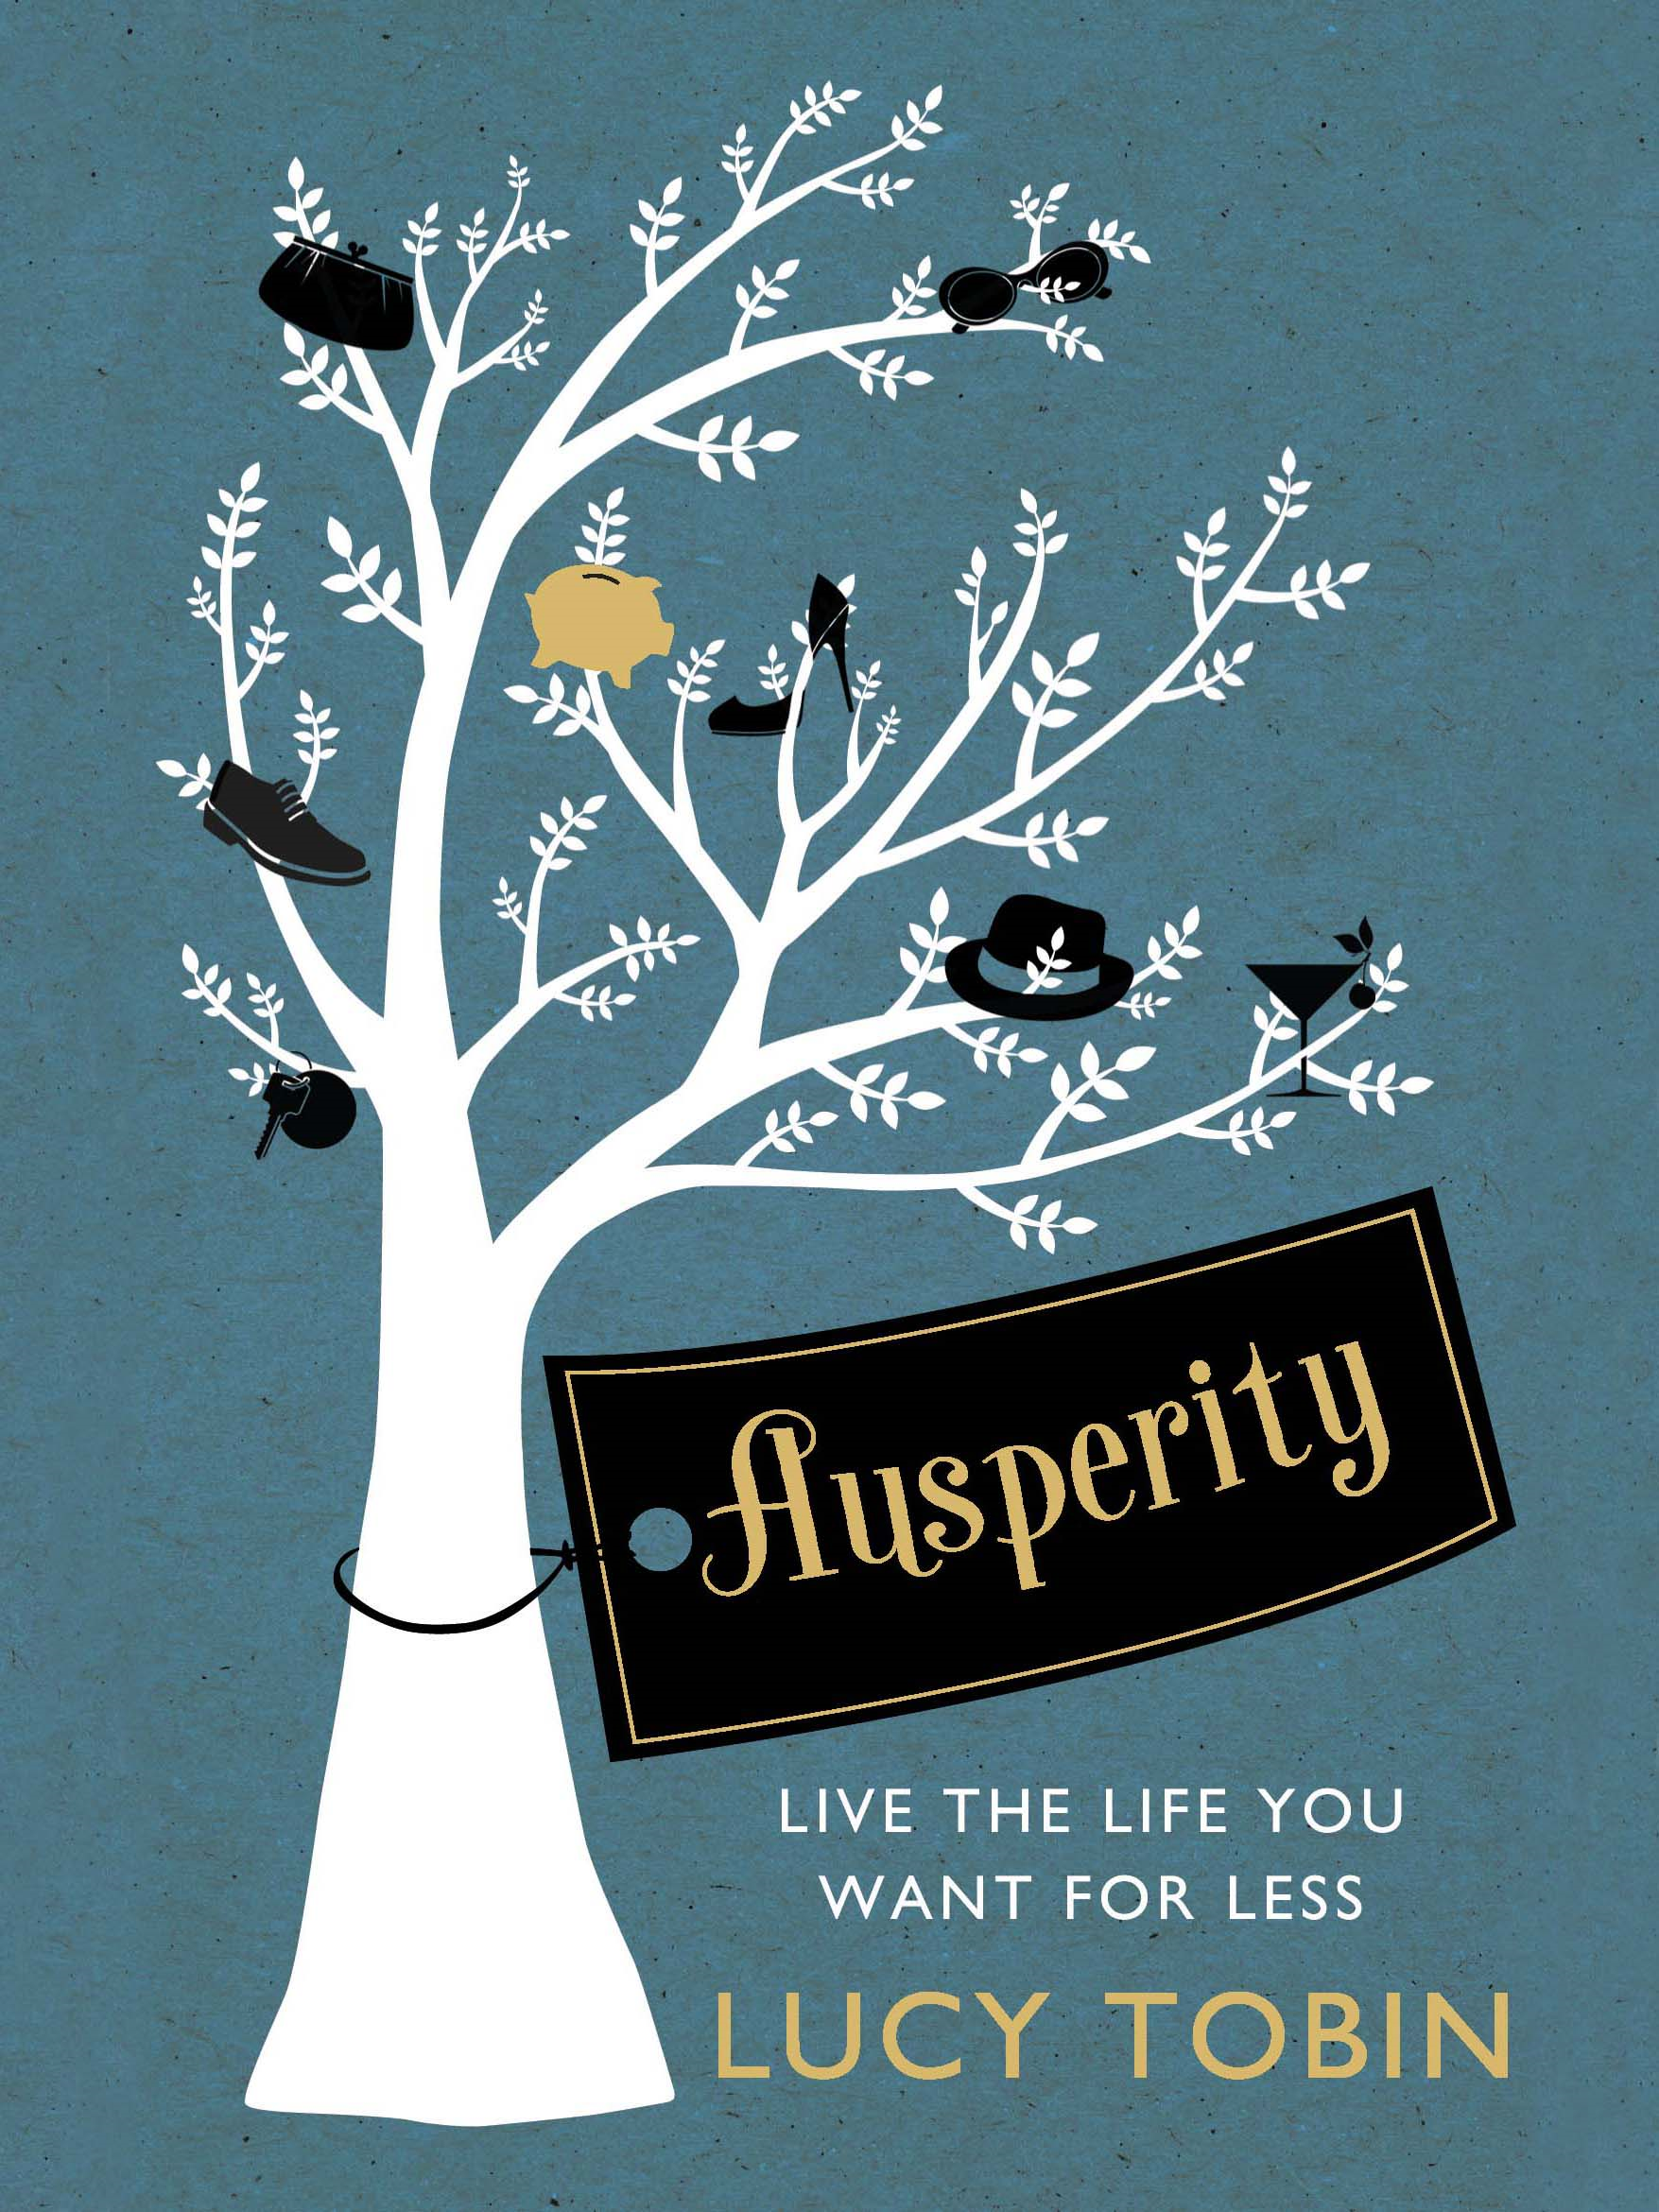 Ausperity Live the Life You Want for Less